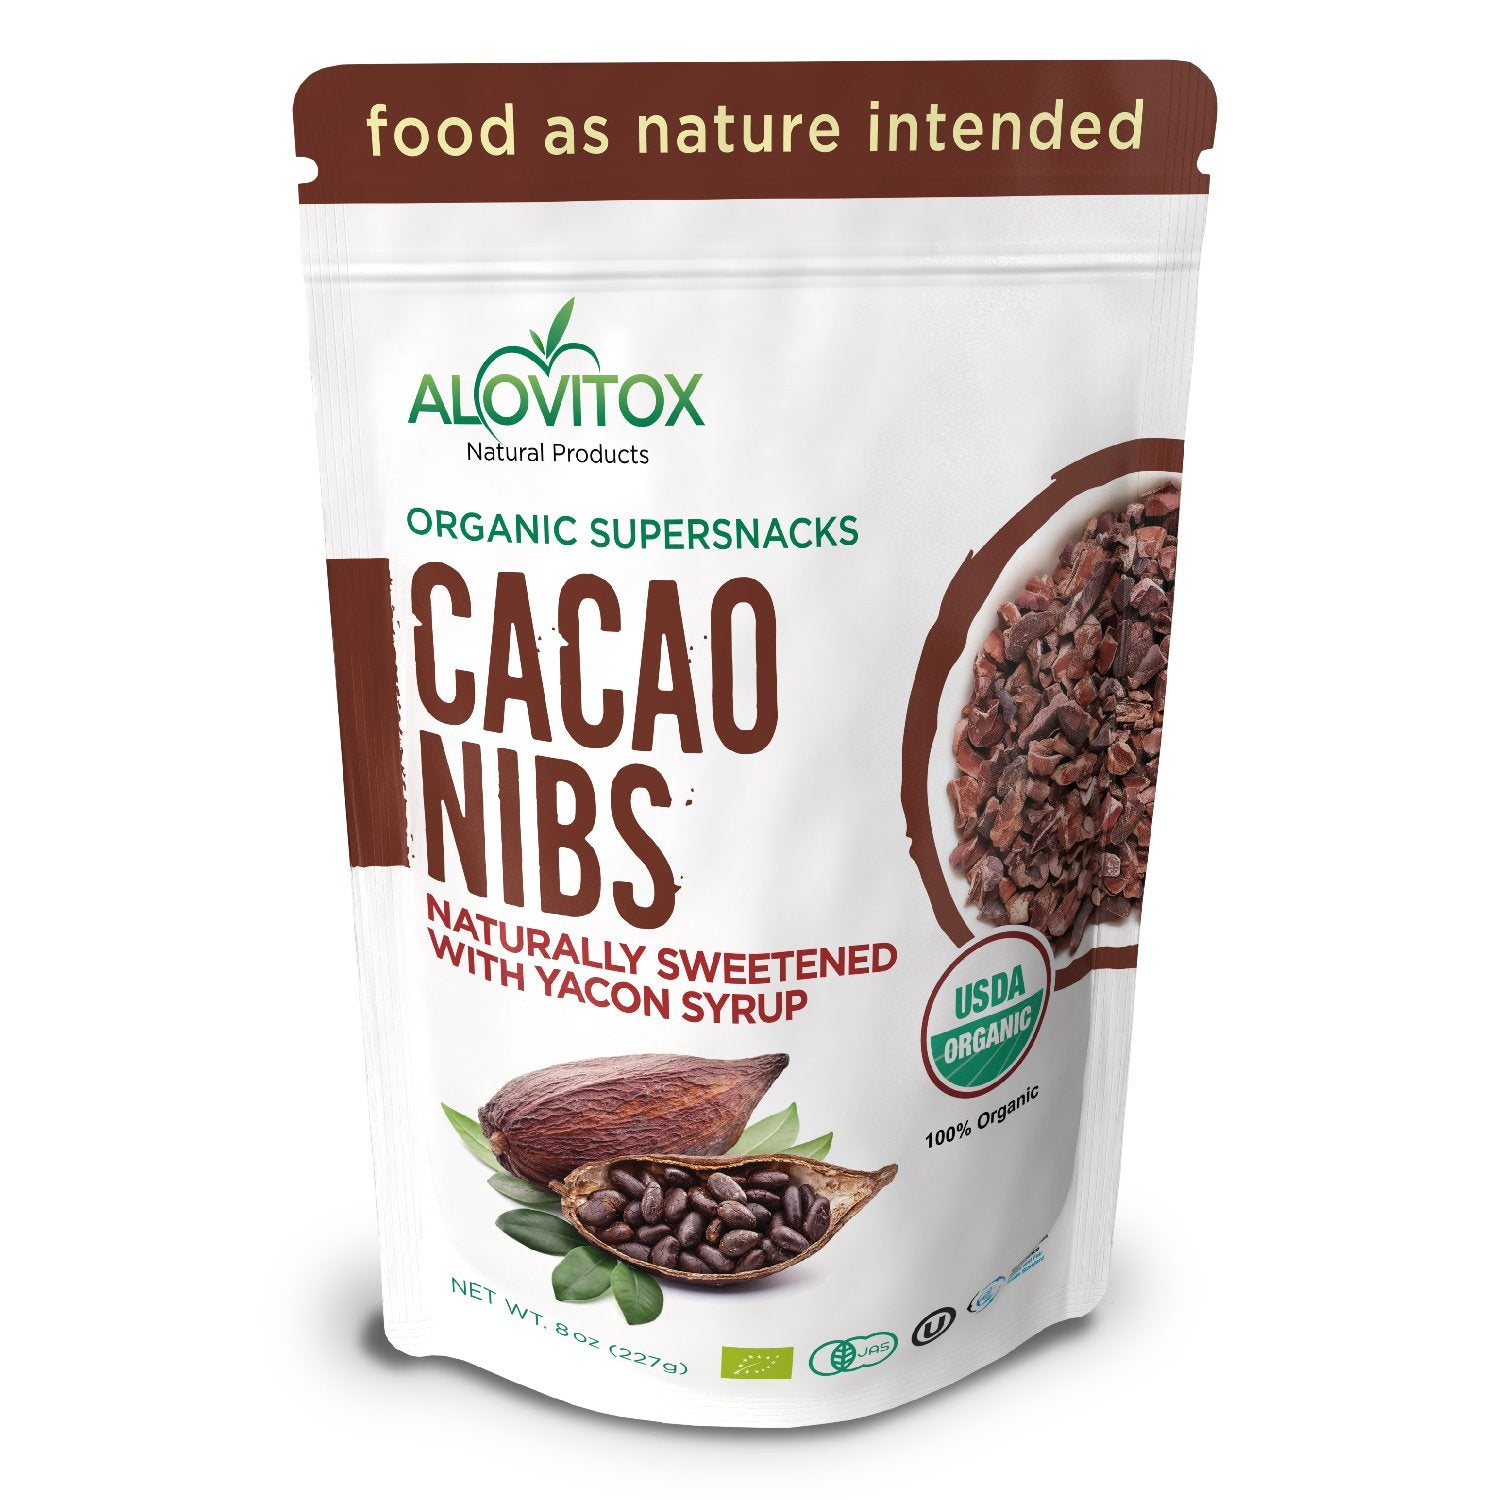 The Top 5 FAQs About Cacao Nibs